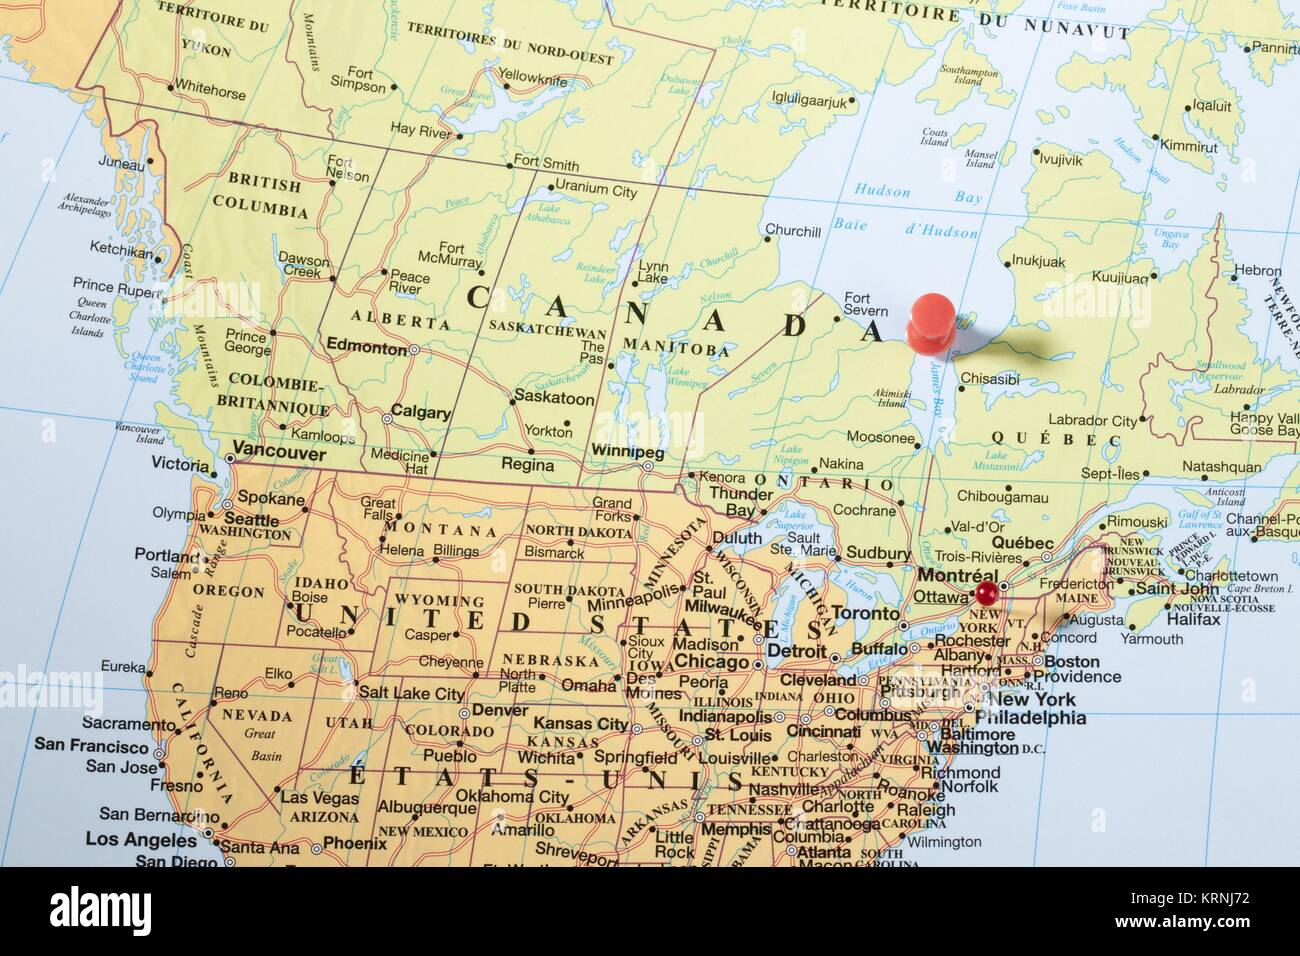 Canada travel map push pins stock photos canada travel map push thumbtack on world map stock image gumiabroncs Image collections